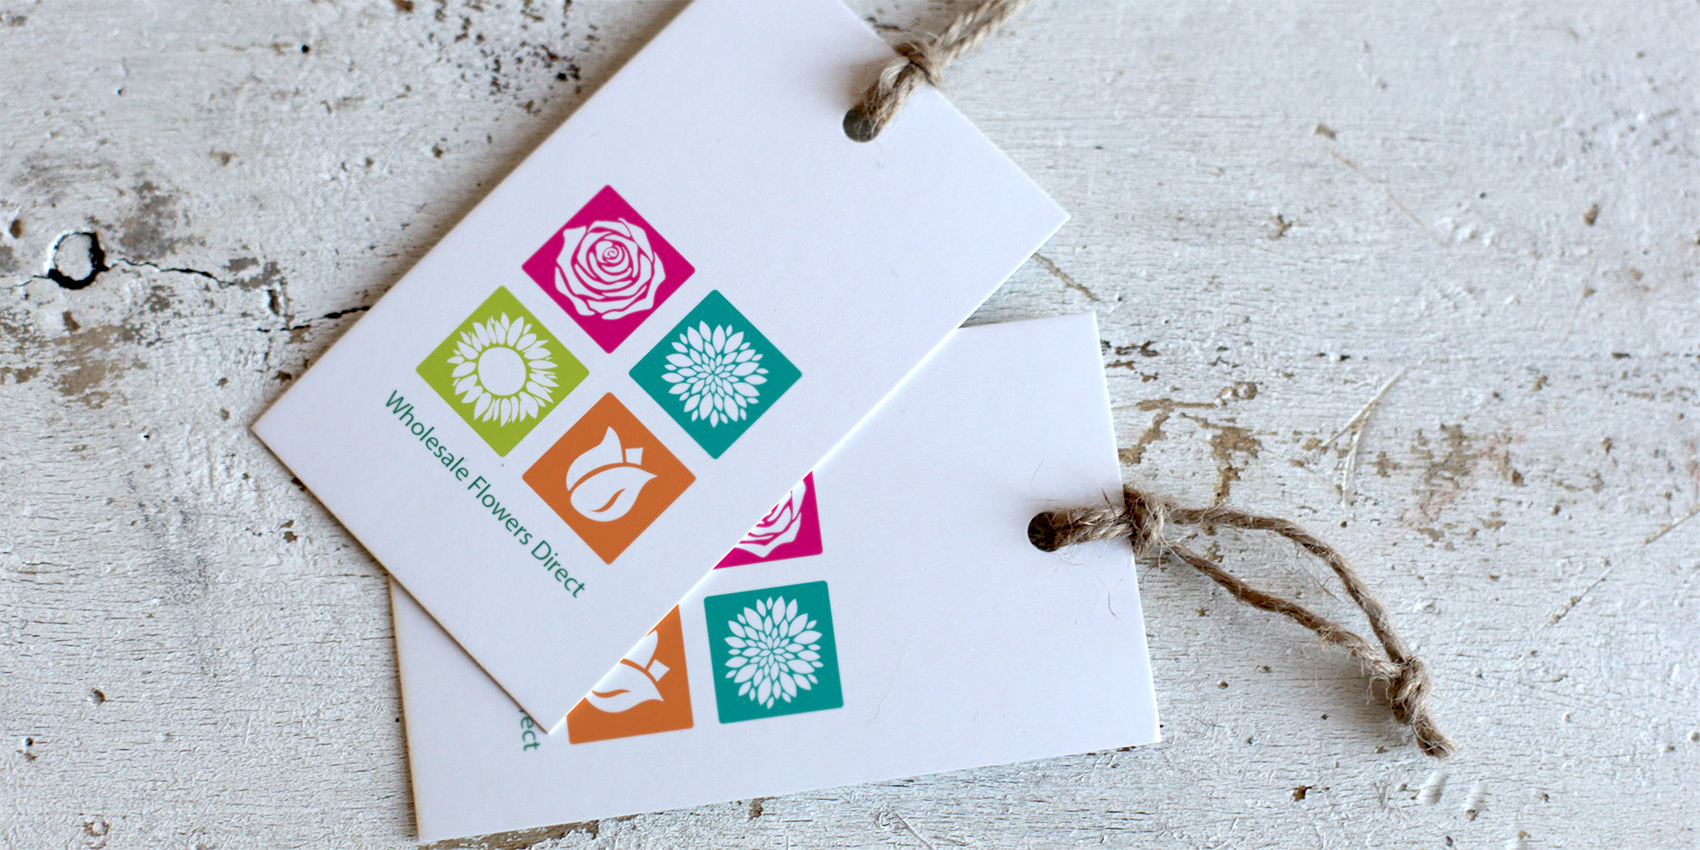 Whole Sale Flowers Direct branded tags